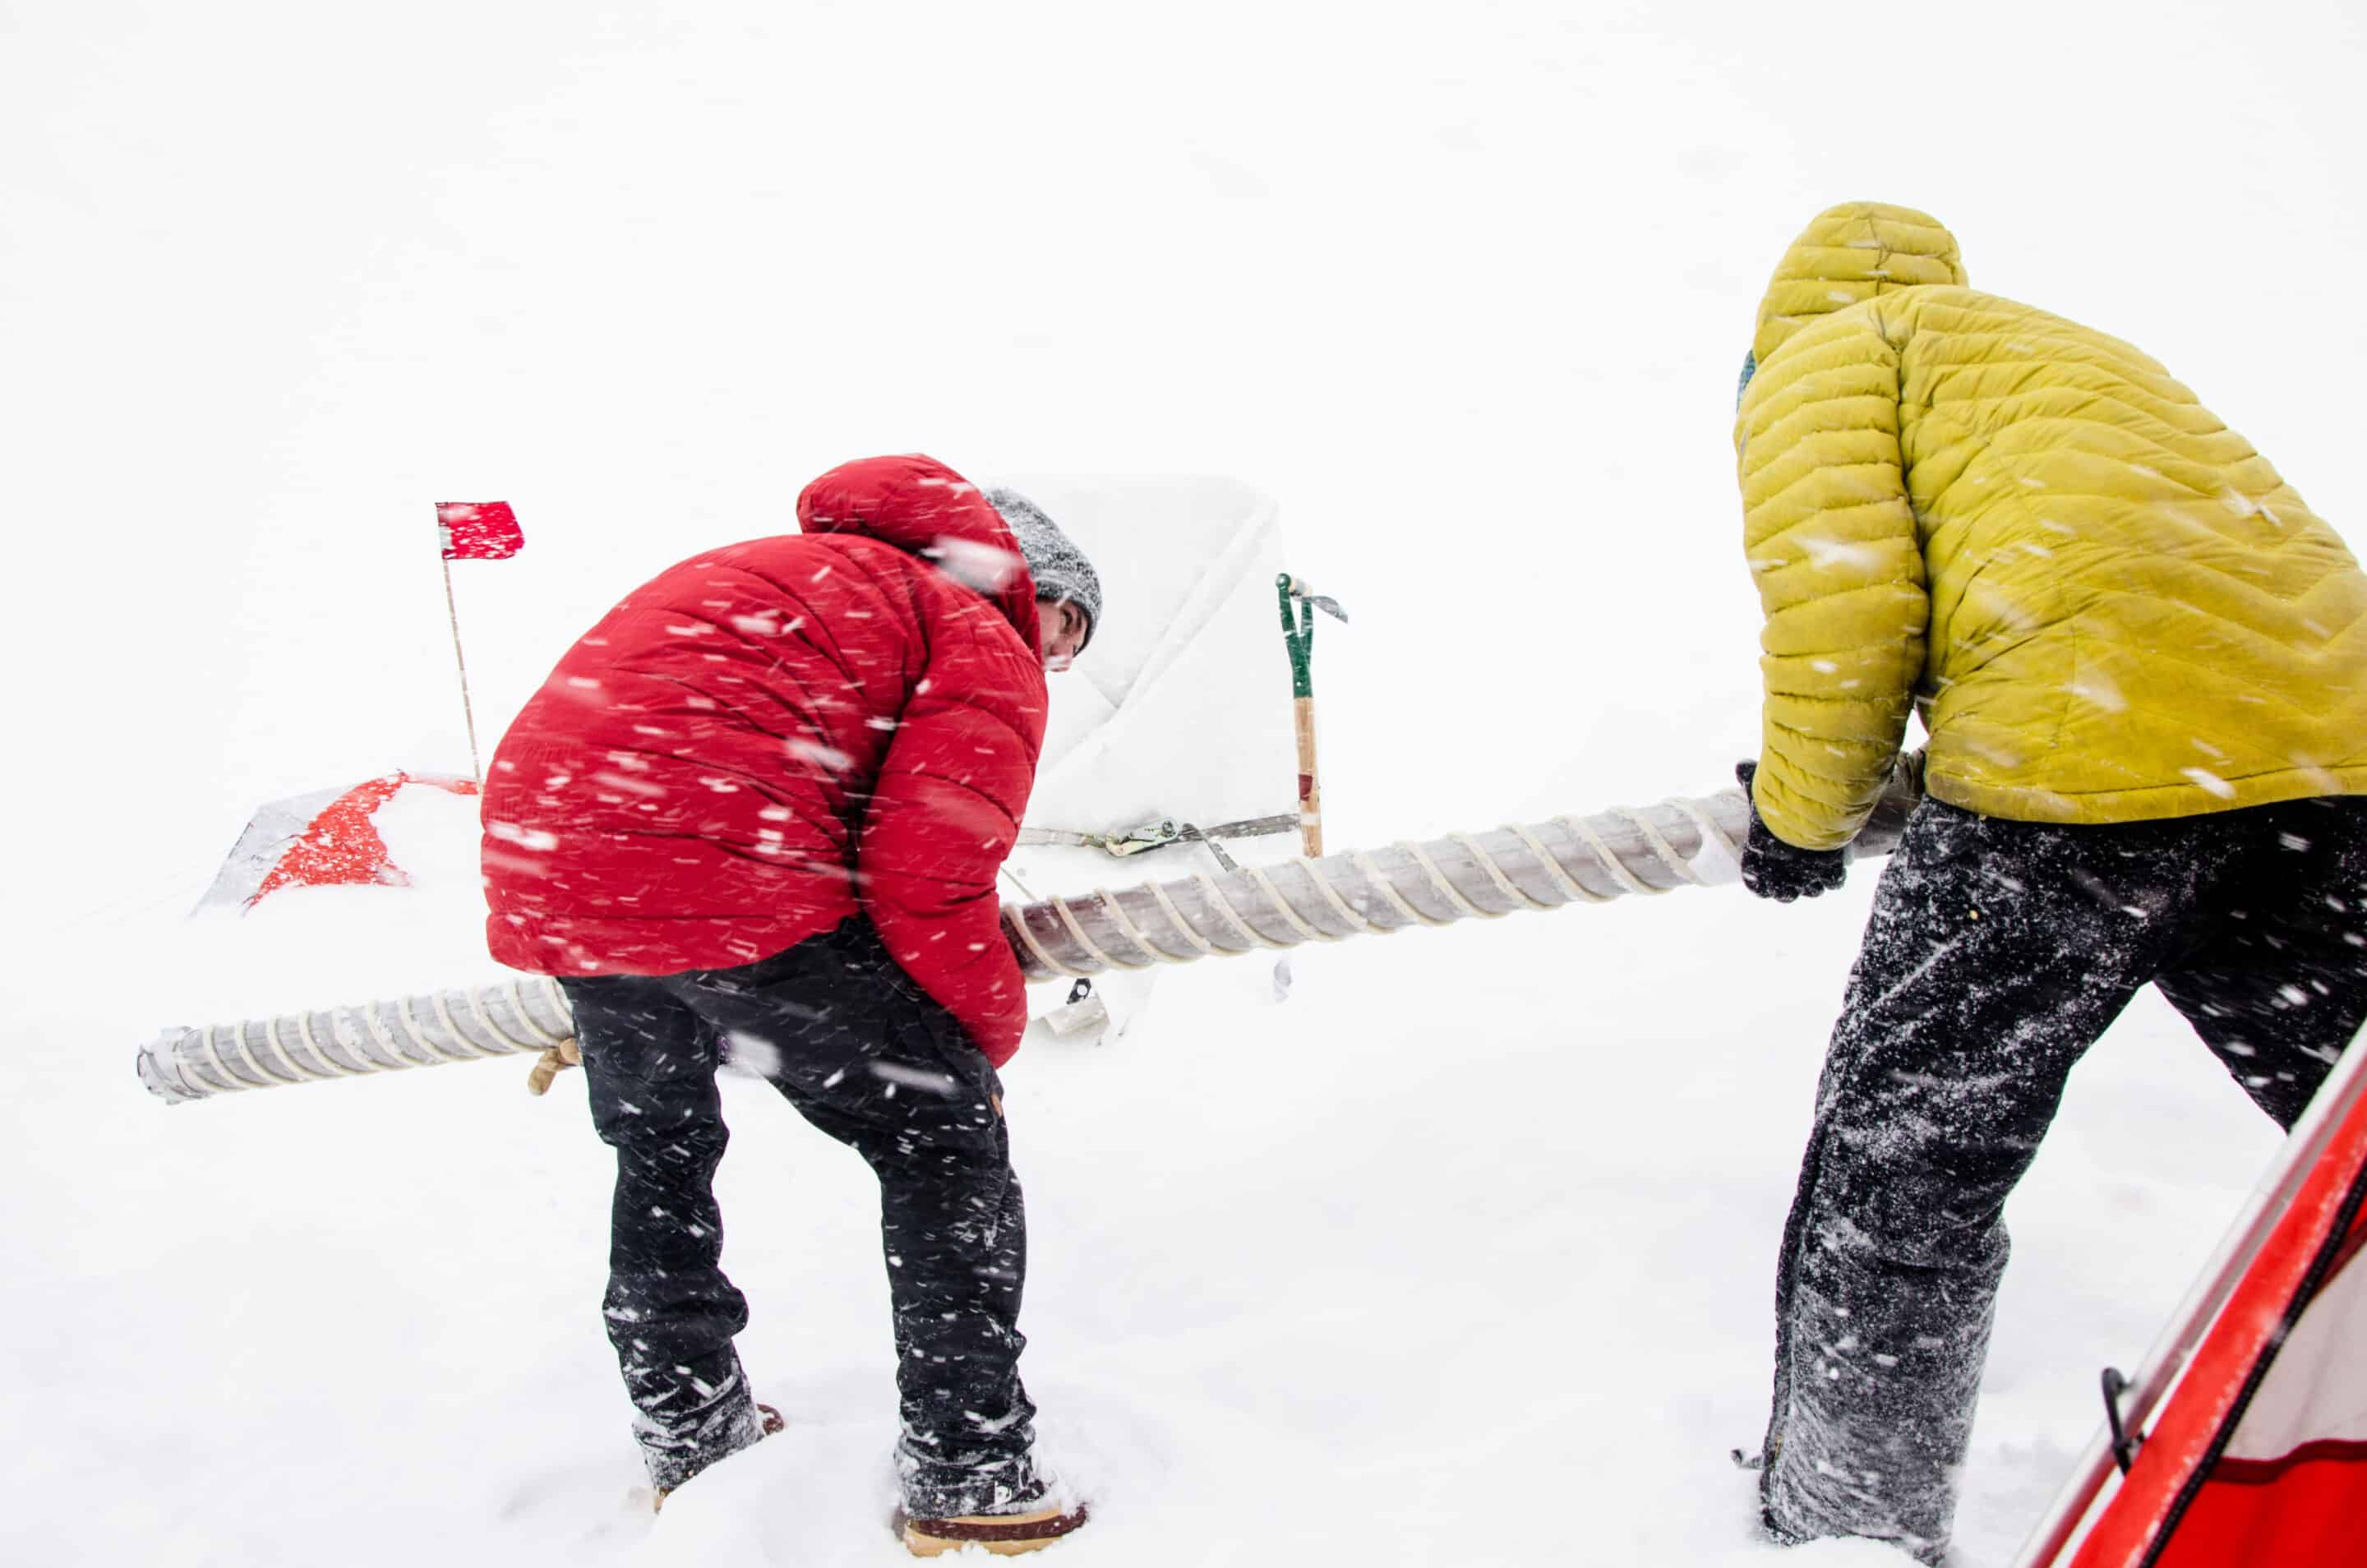 Recovering an ice core from west Greenland. Credit: Sarah Has/Woods Hole Oceanographic Institution